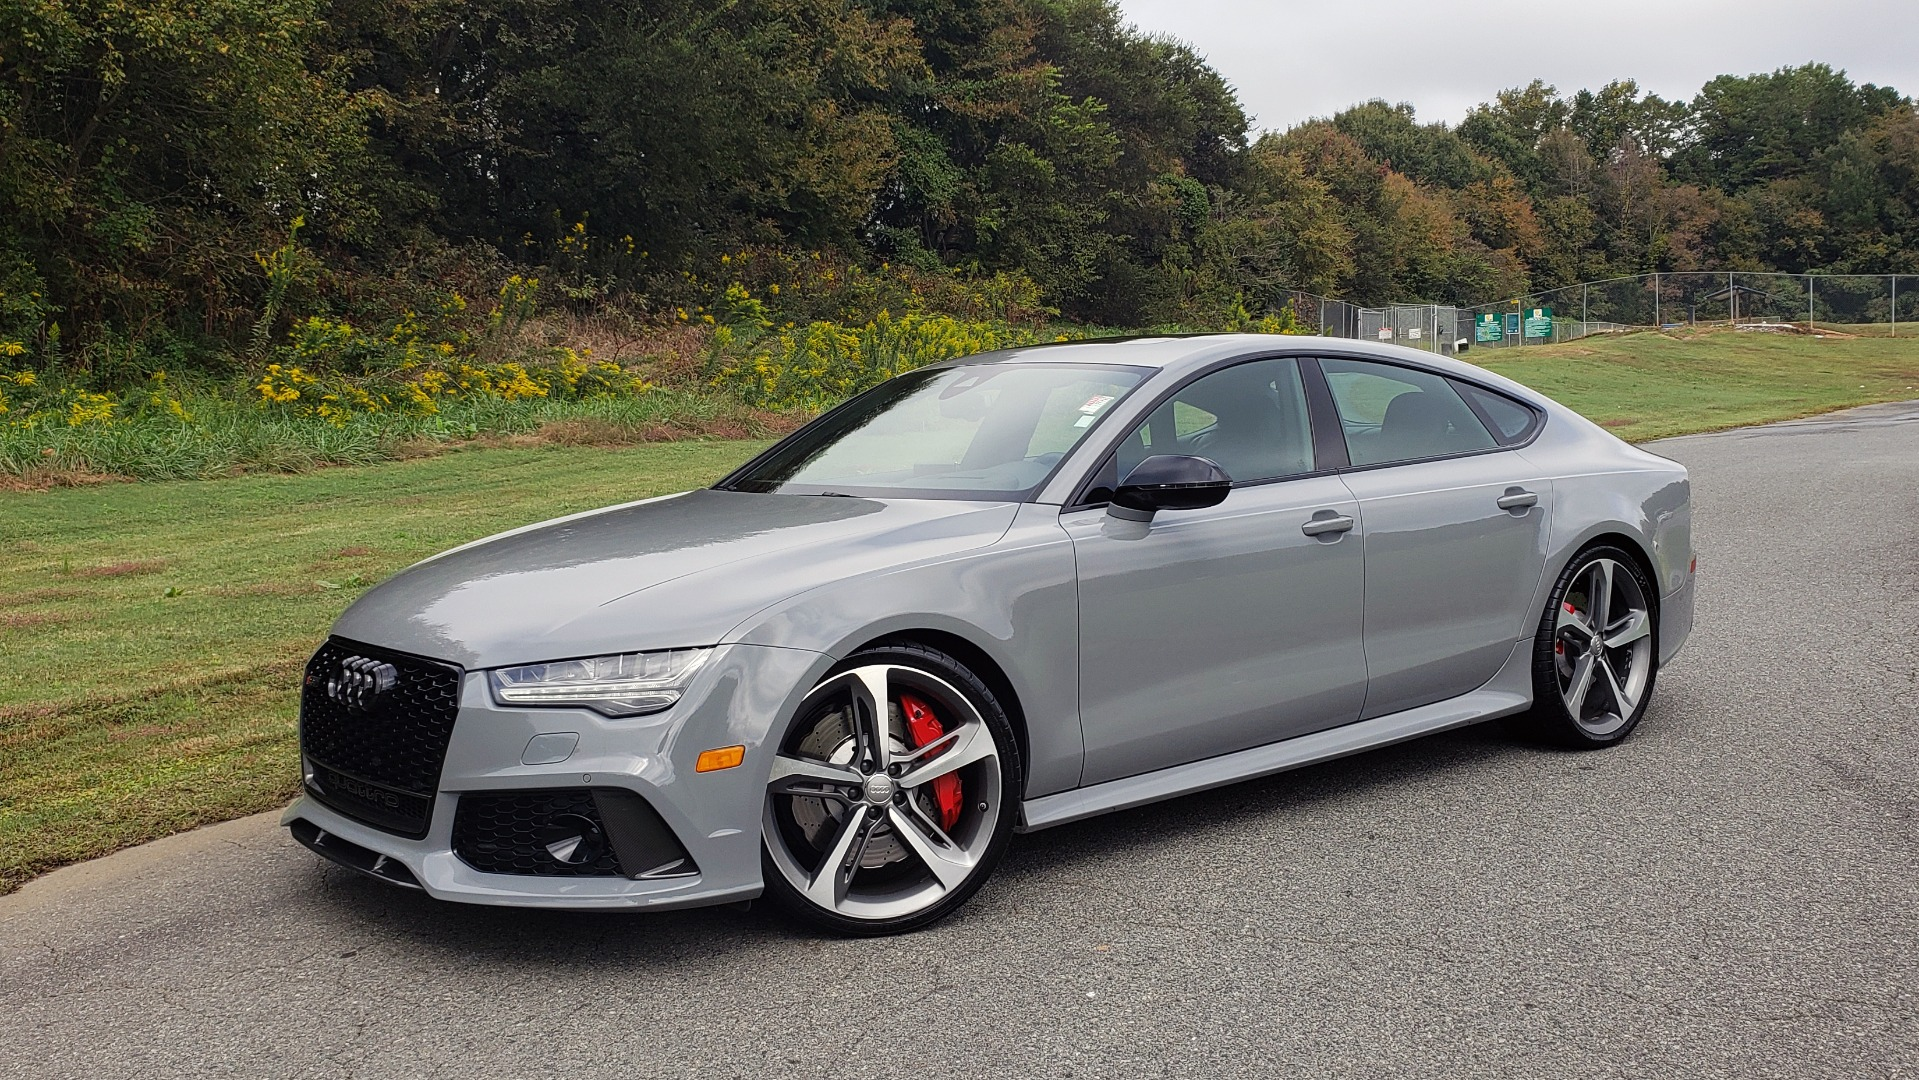 Used 2018 Audi RS 7 4.0T TIPTRONIC / CARBON OPTIC / DRVR ASST / NAV / REARVIEW for sale $91,625 at Formula One Imports in Charlotte NC 28227 2